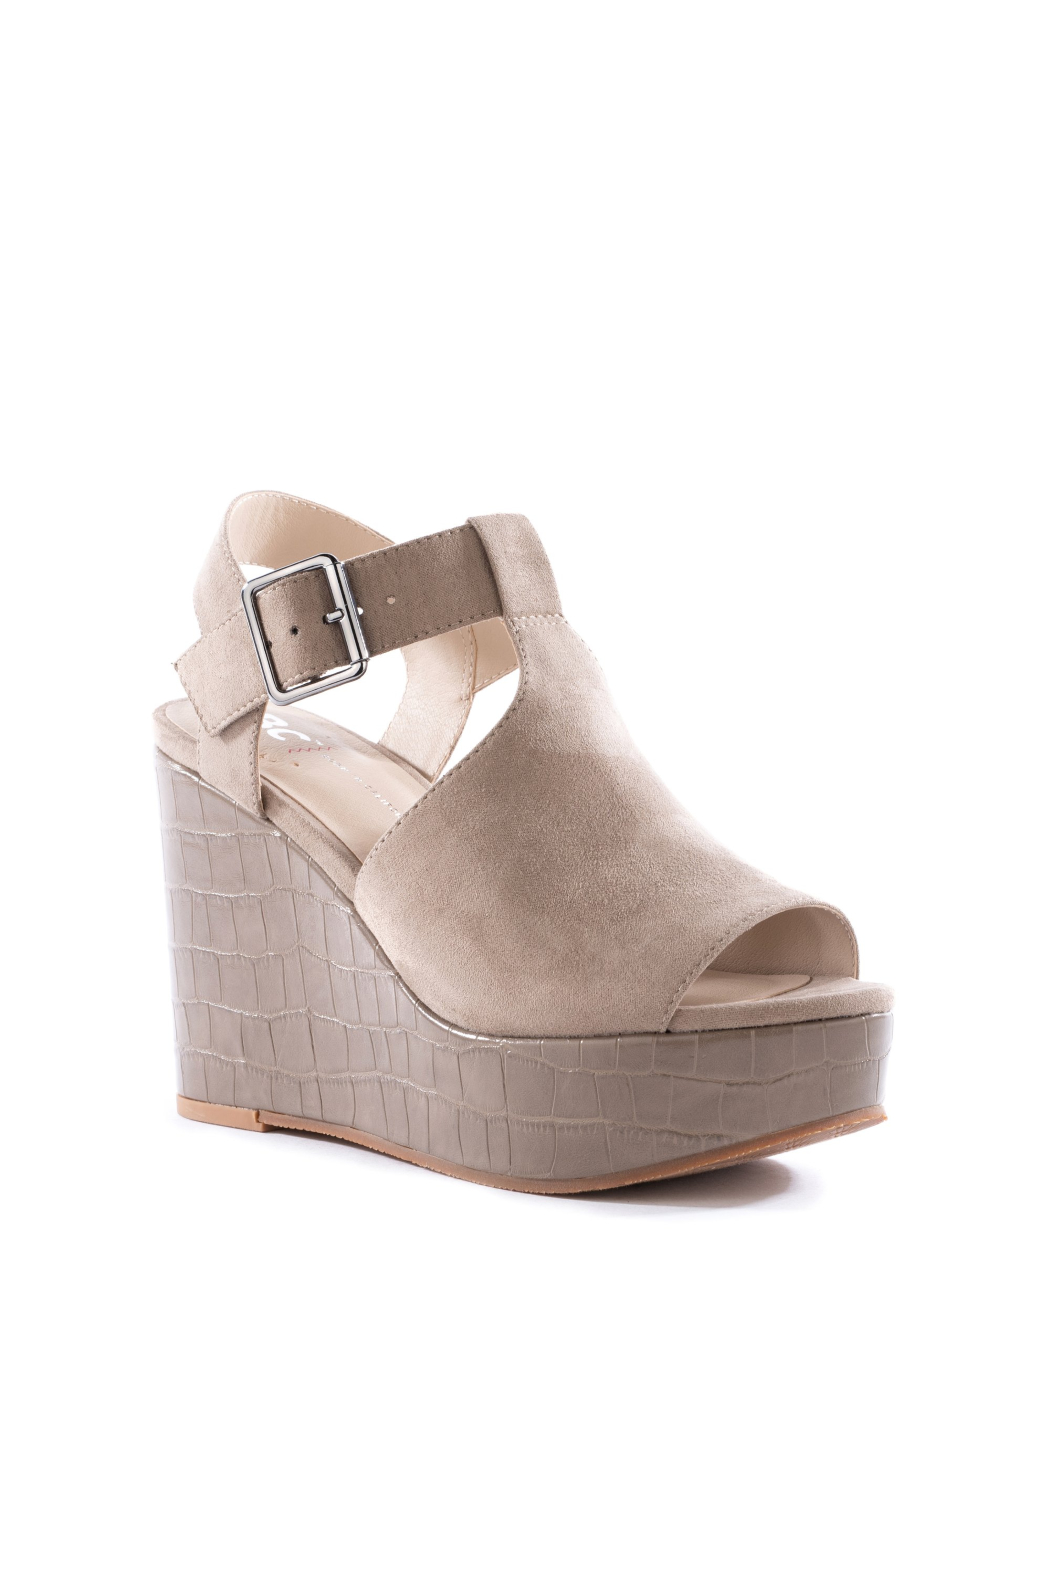 BC Footwear Here We Go Wedge - Front Full Image